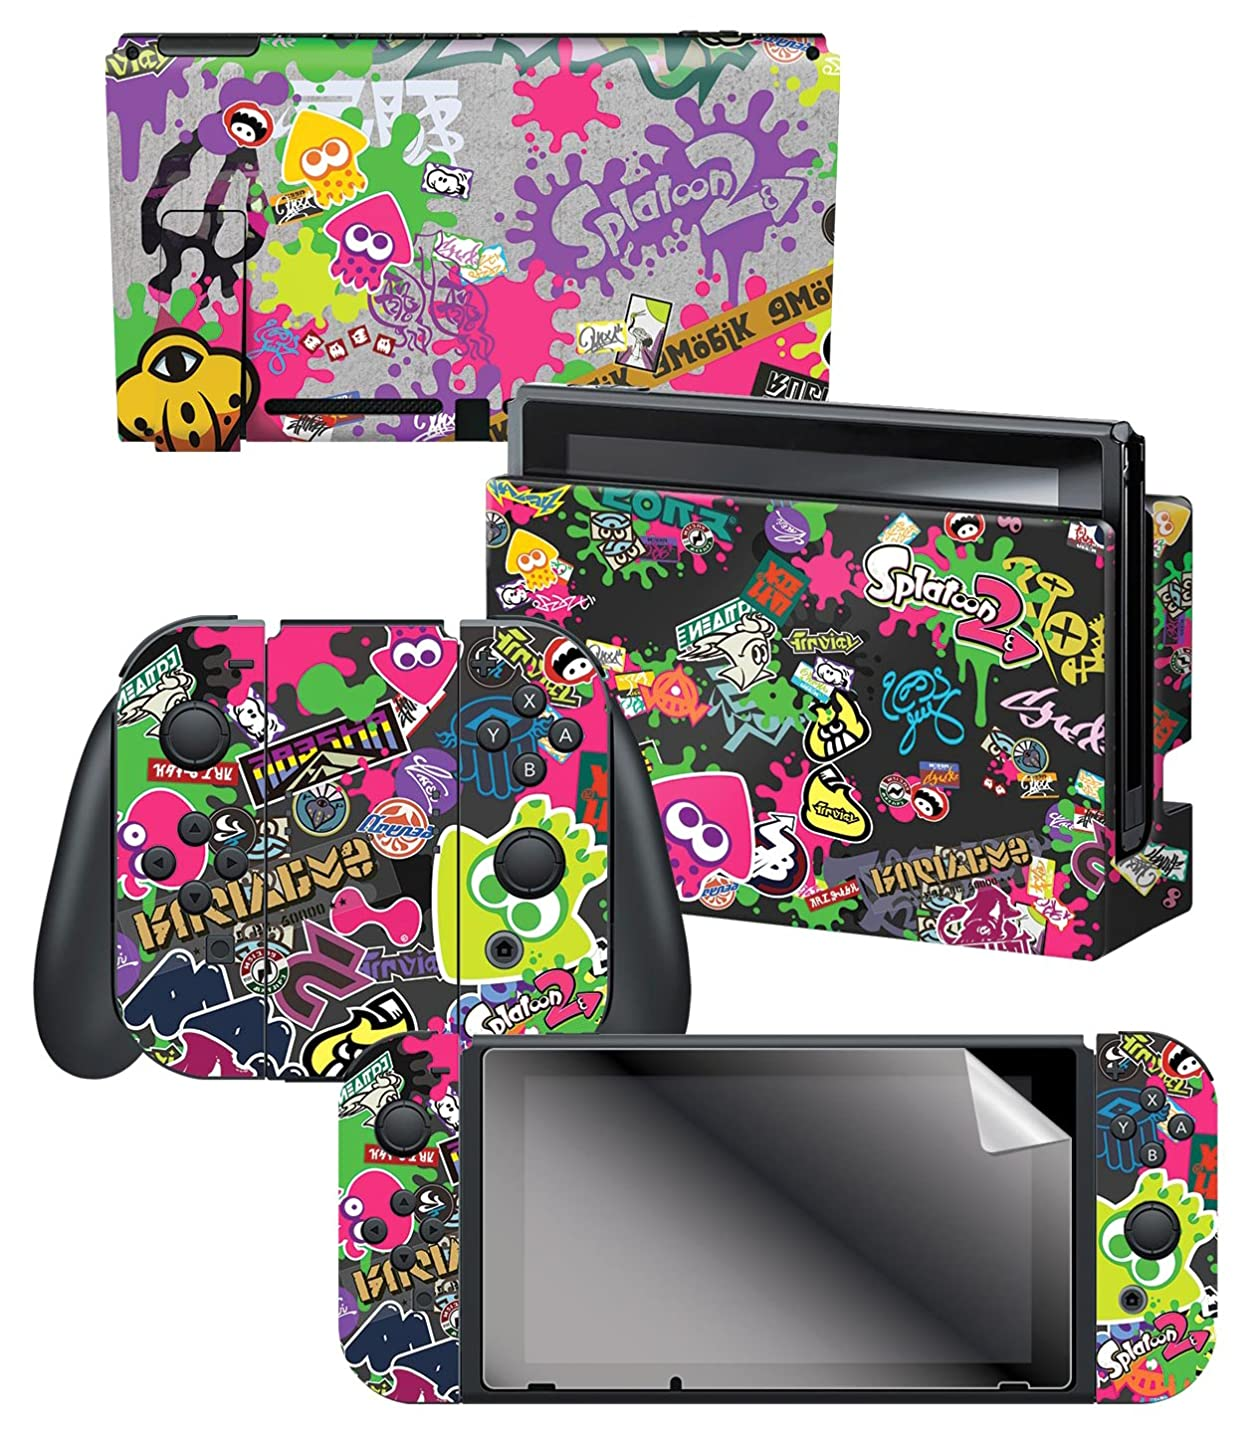 Controller Gear Nintendo Switch Skin & Screen Protector Set, Officially Licensed By Nintendo - Splatoon 2